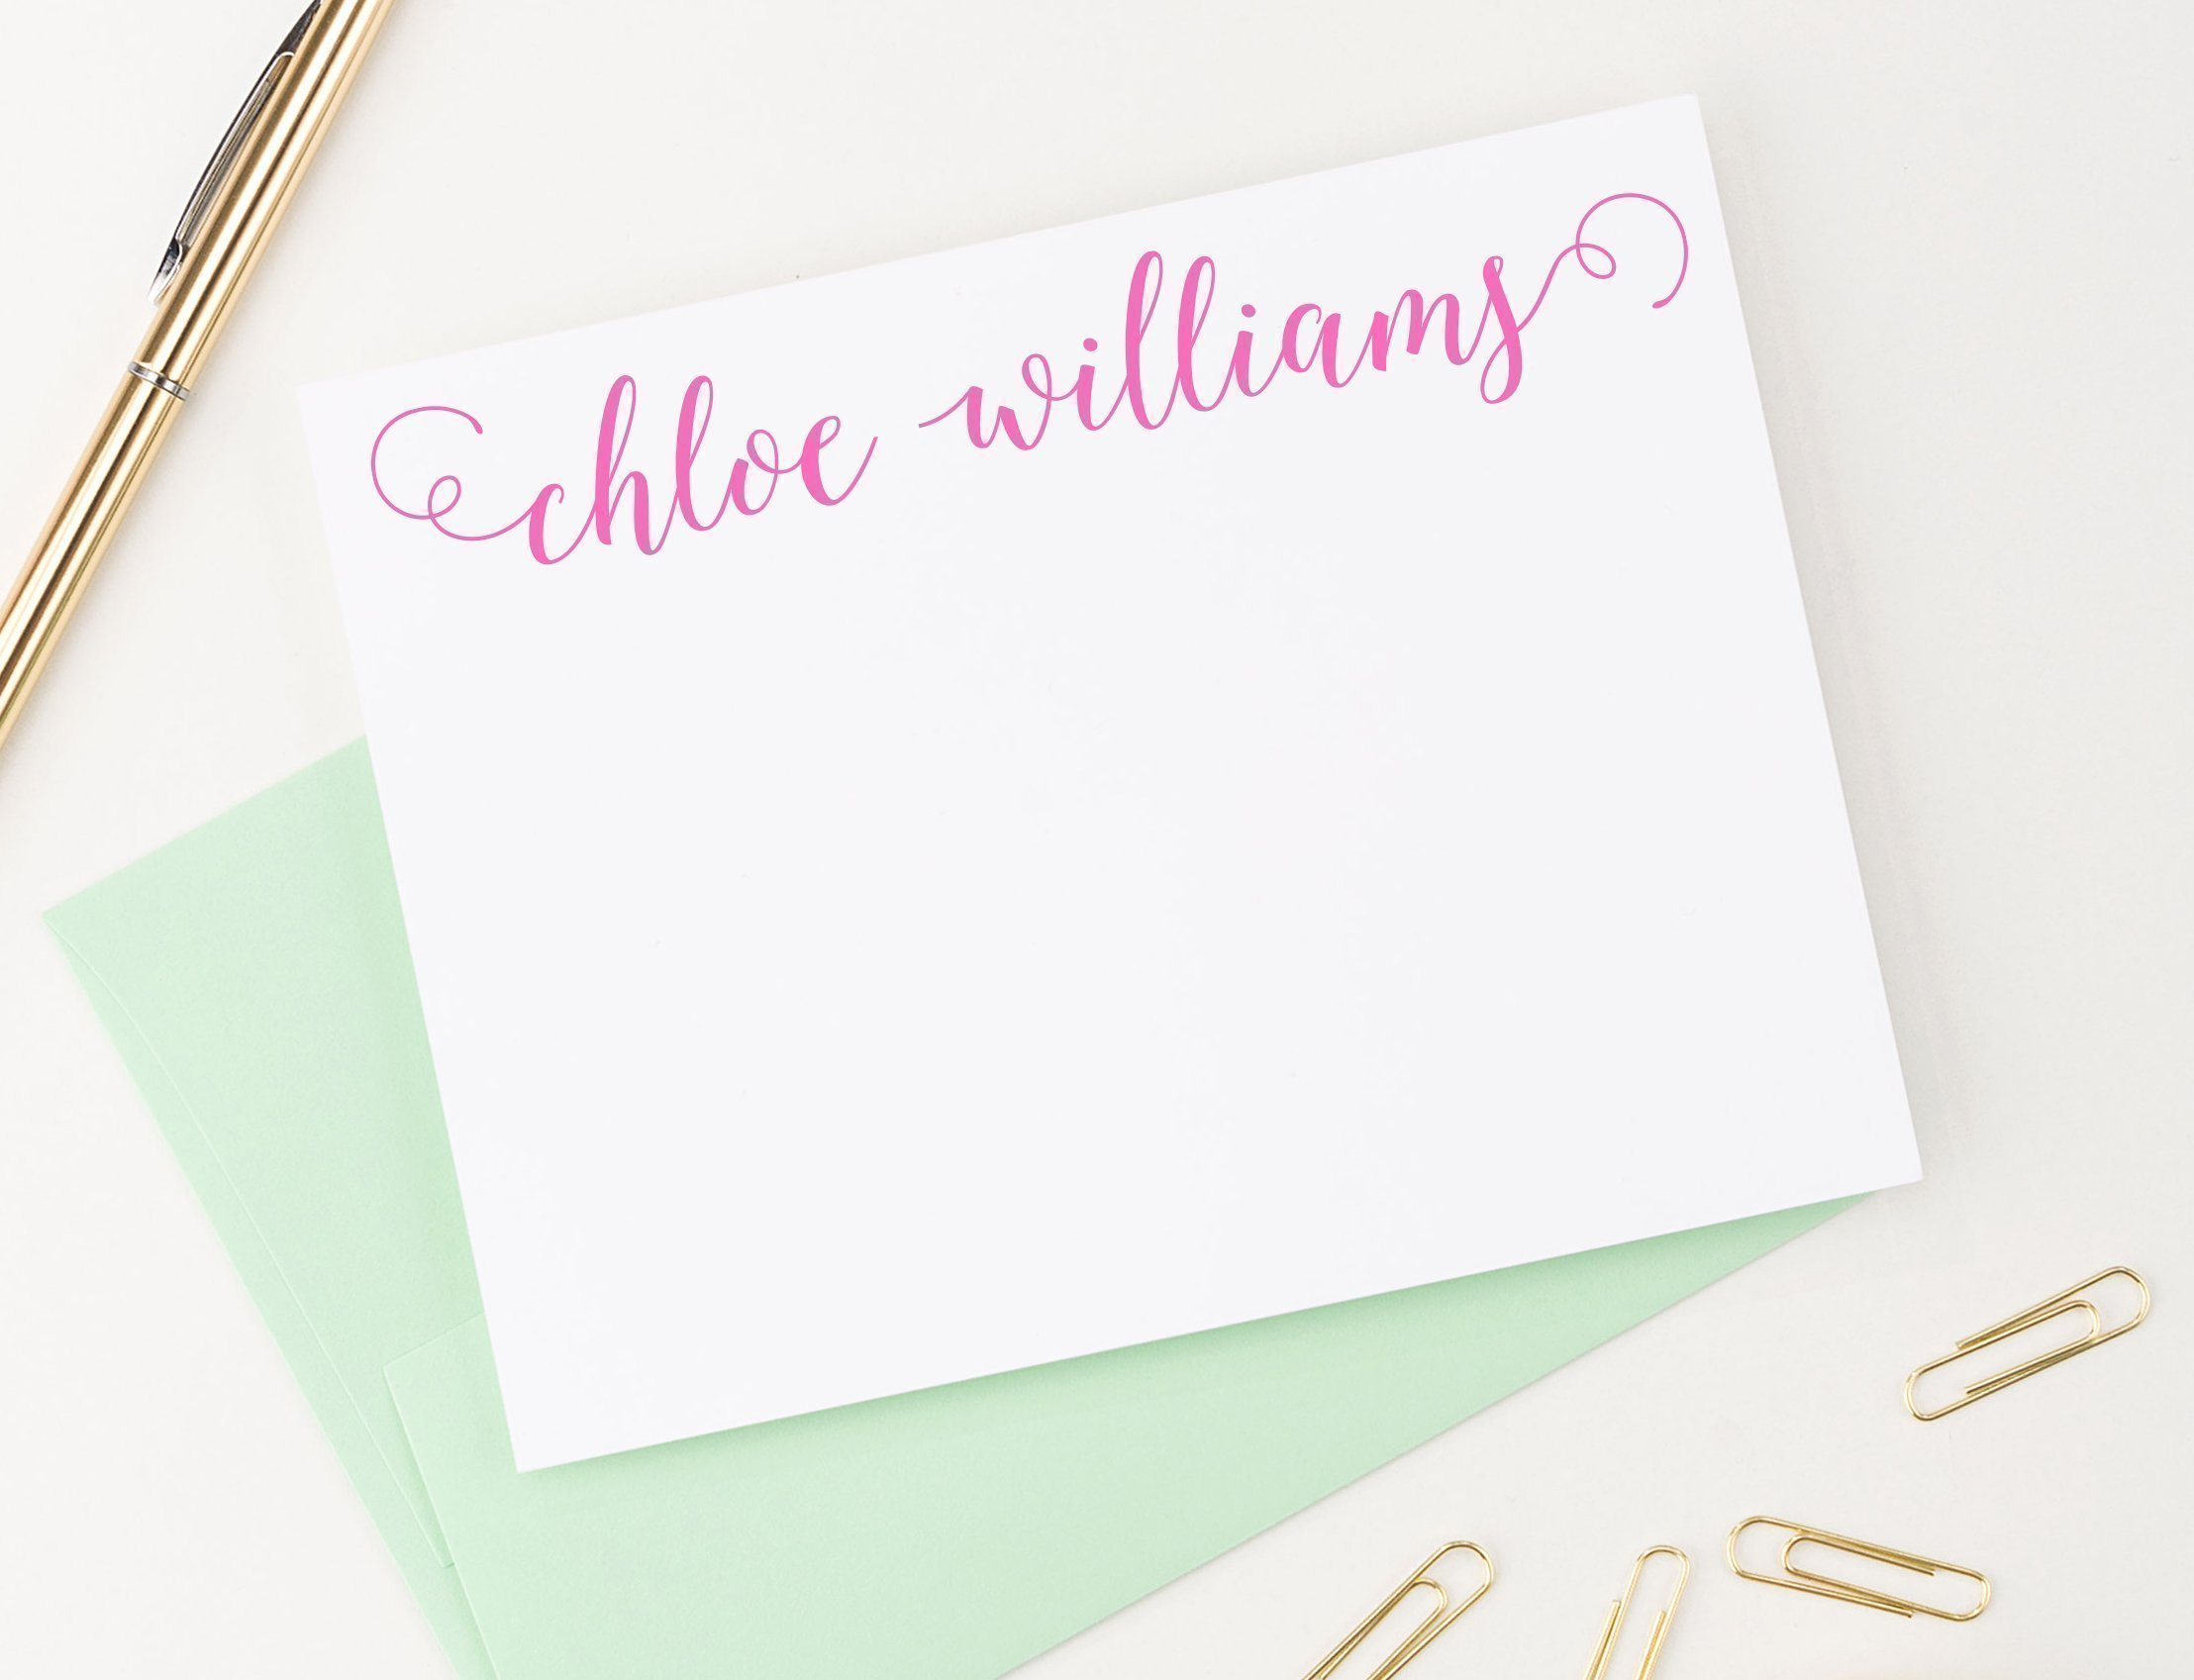 Personalized Stationery Set, Calligraphy, Personalized note cards, Personalized Thank you note cards, Personalized Stationary set, Set of 10 flat note cards and envelopes